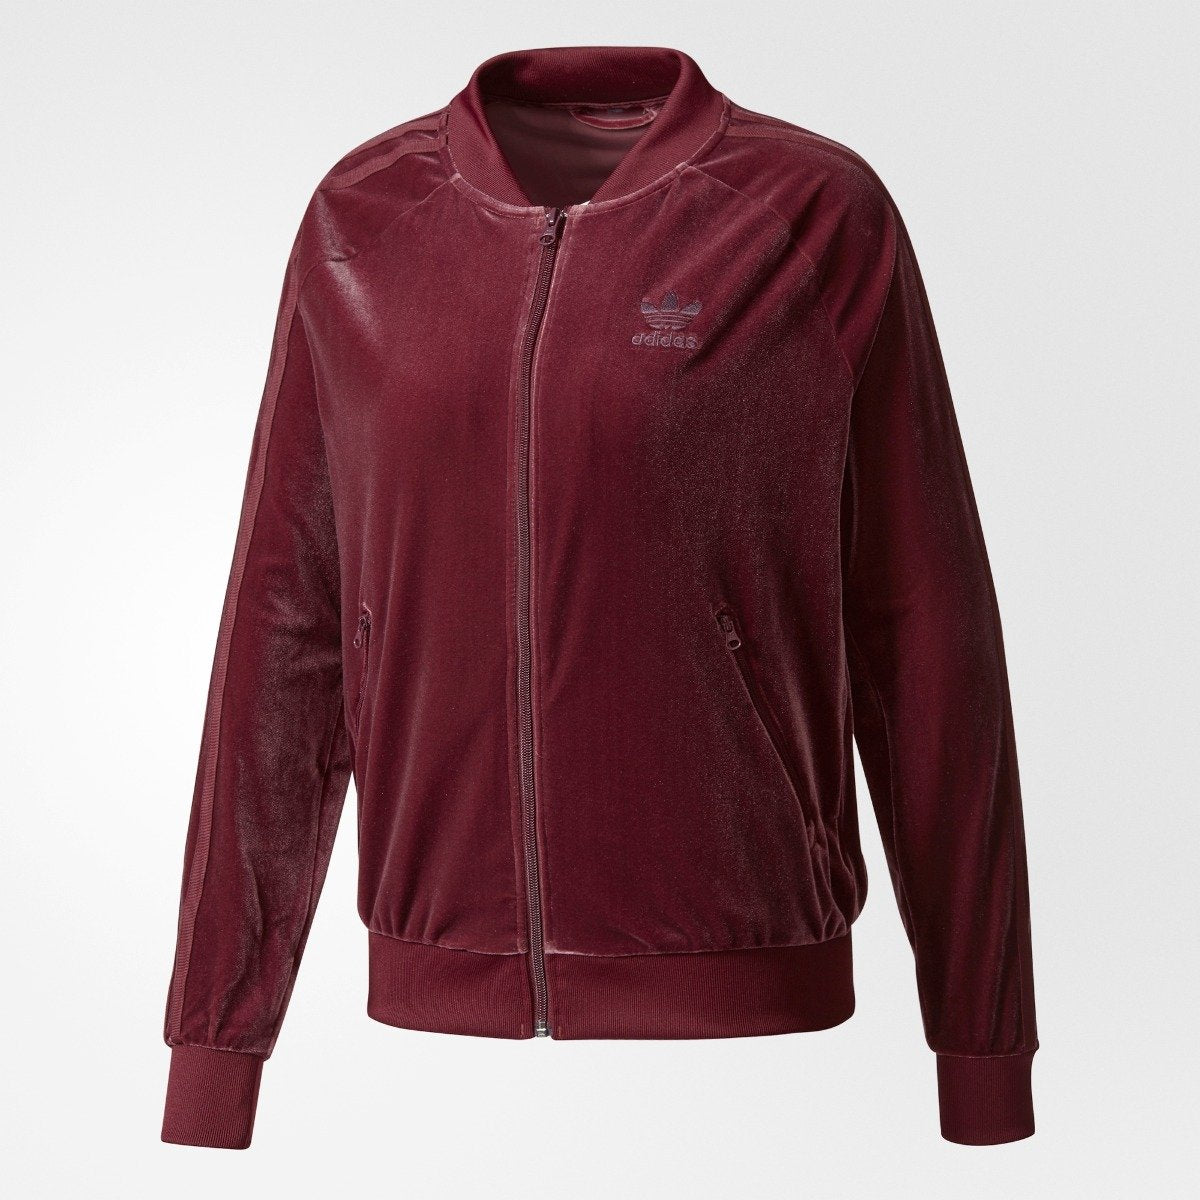 a78a8c156535 Women s adidas Originals Velvet Vibes SST Track Jacket Maroon CW0271 ...